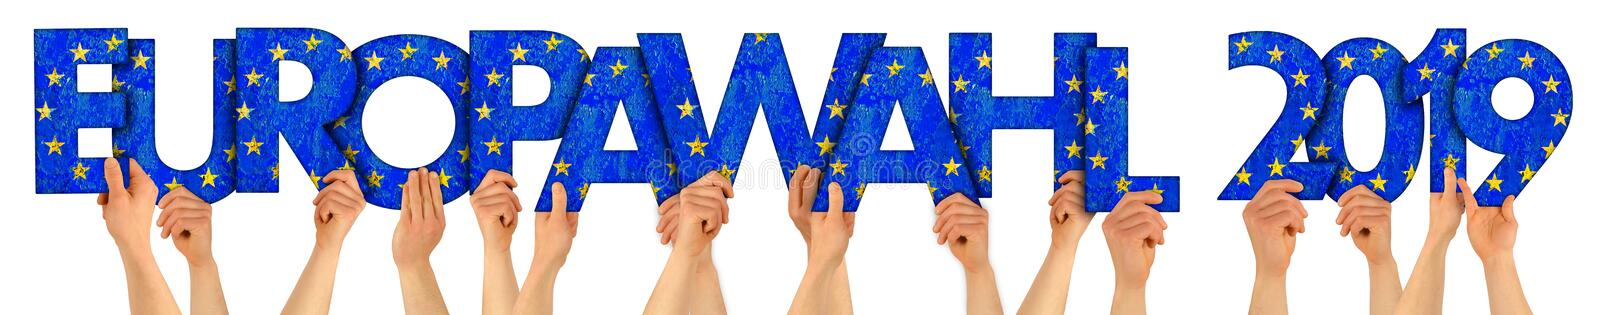 People arms hands holding up wooden letter lettering forming words europawahl 2019 euro union national flag colors politics royalty free stock photography